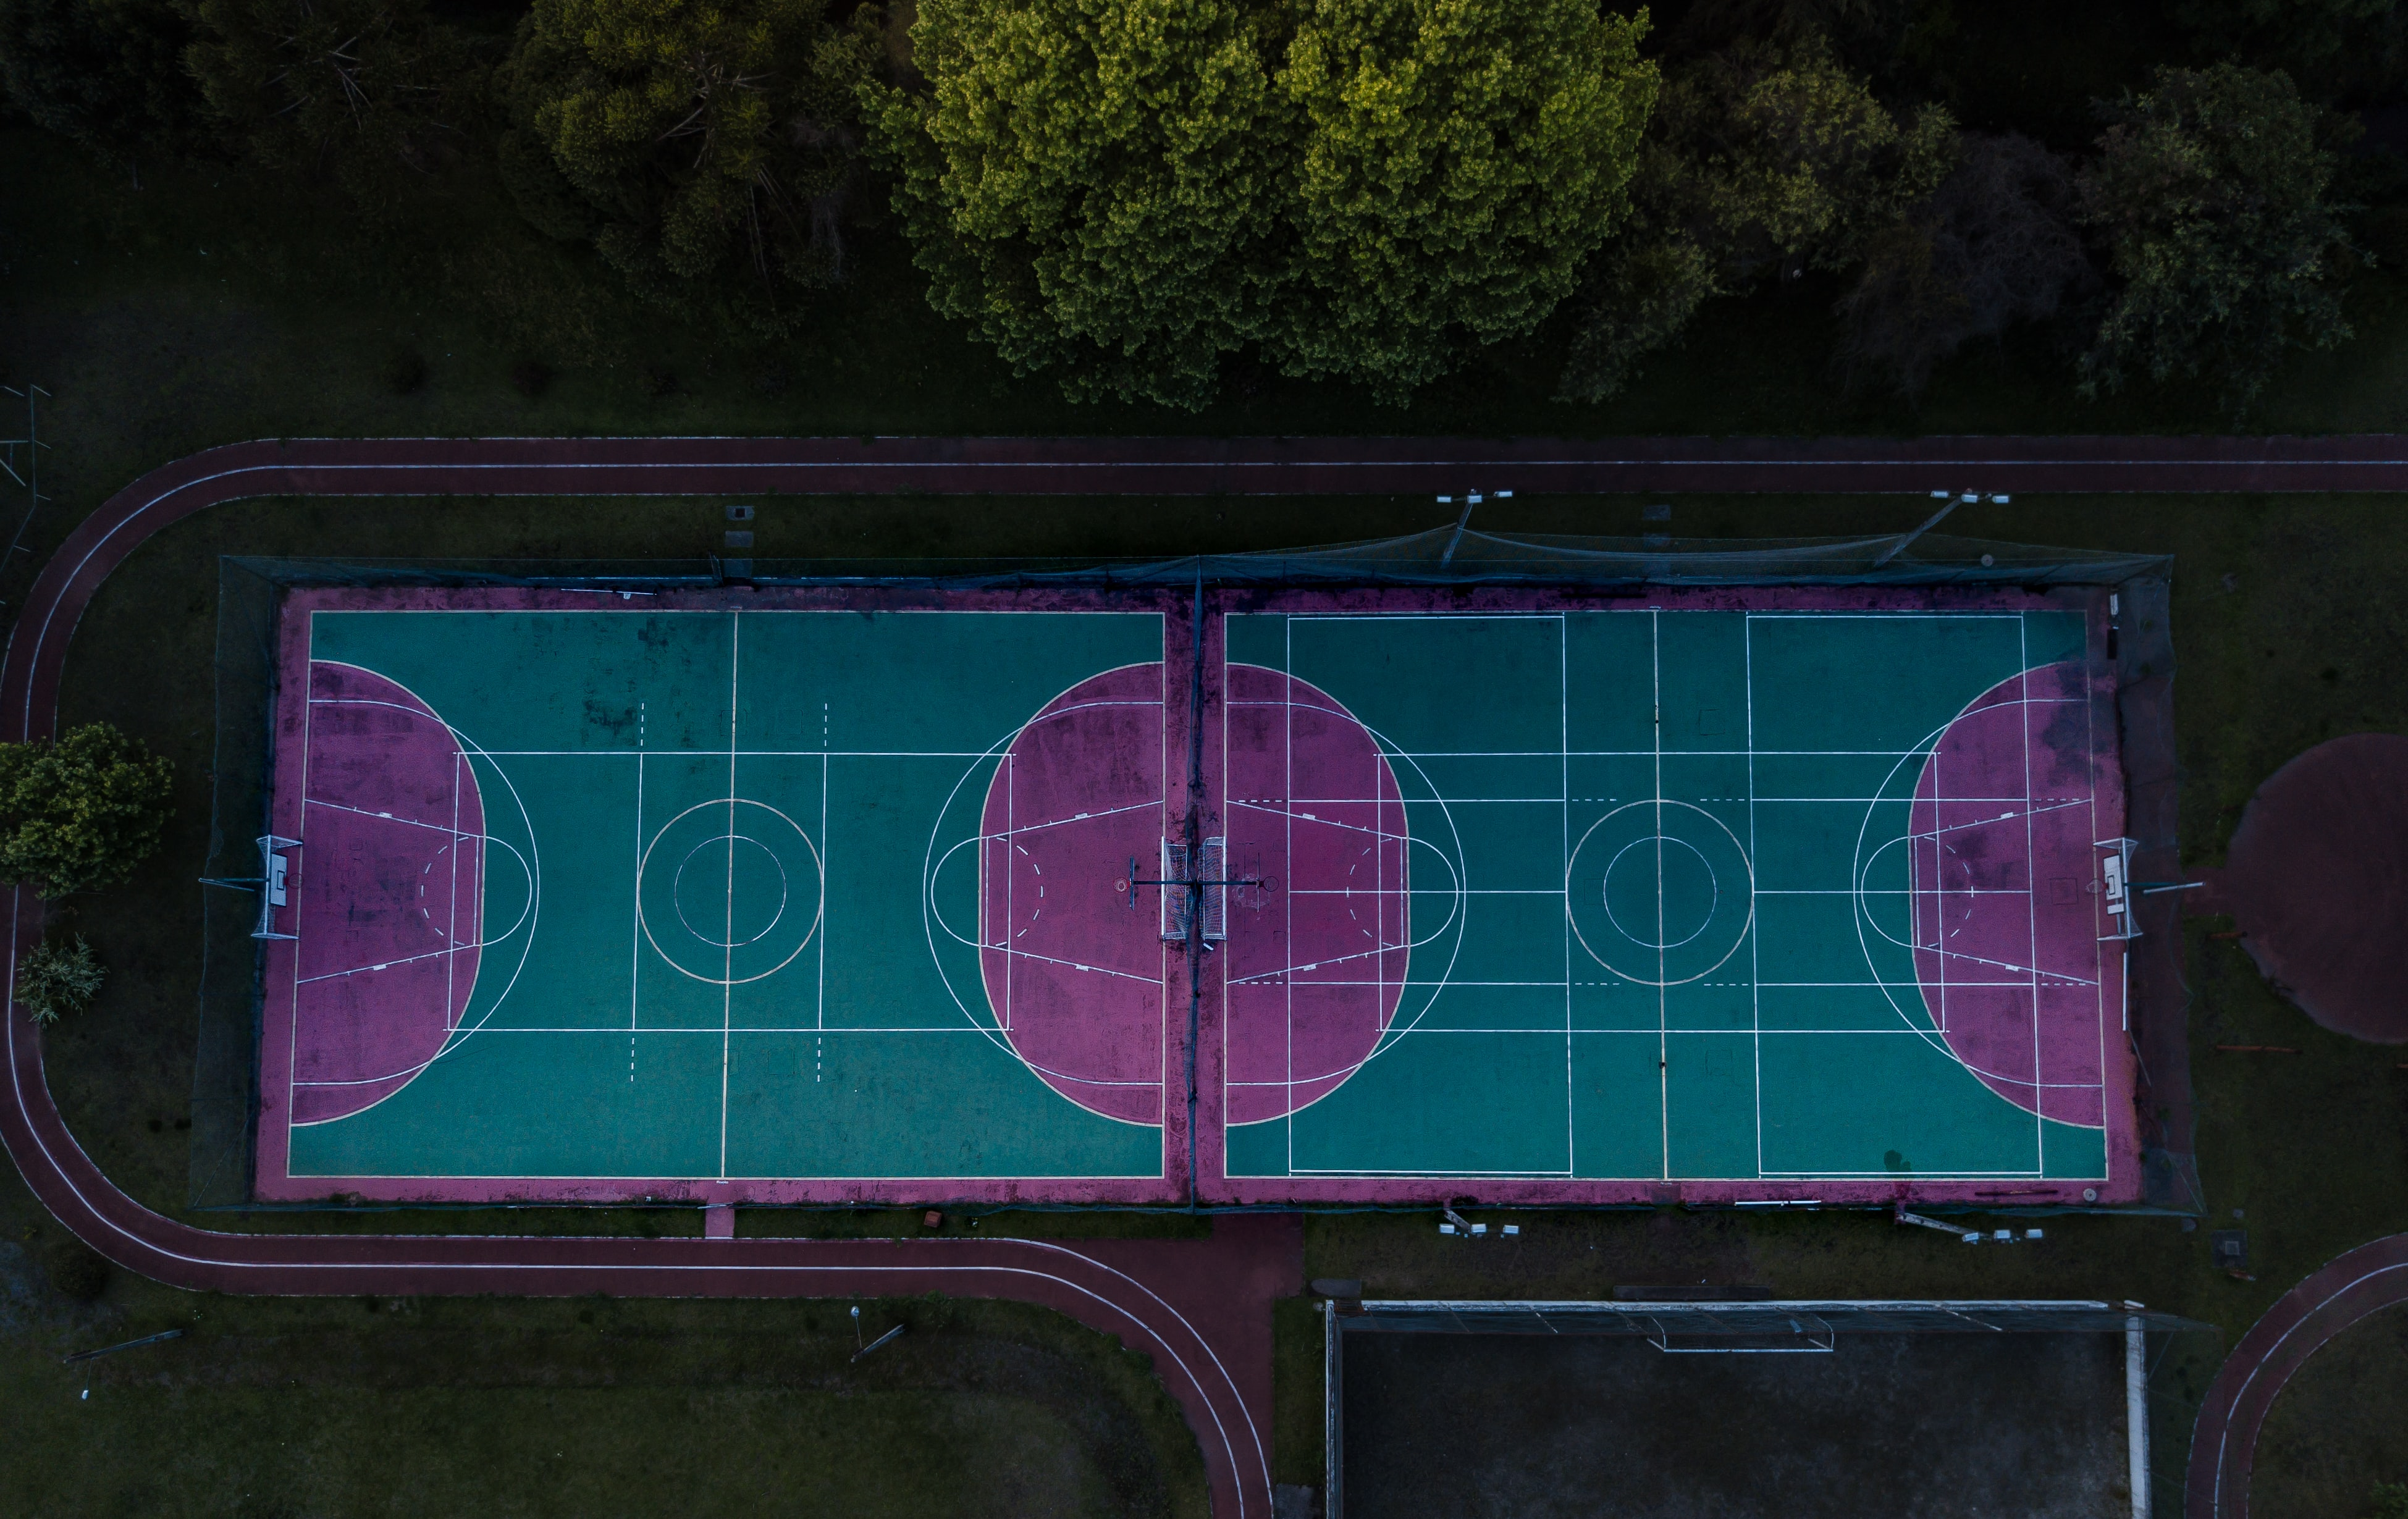 two basketball courts